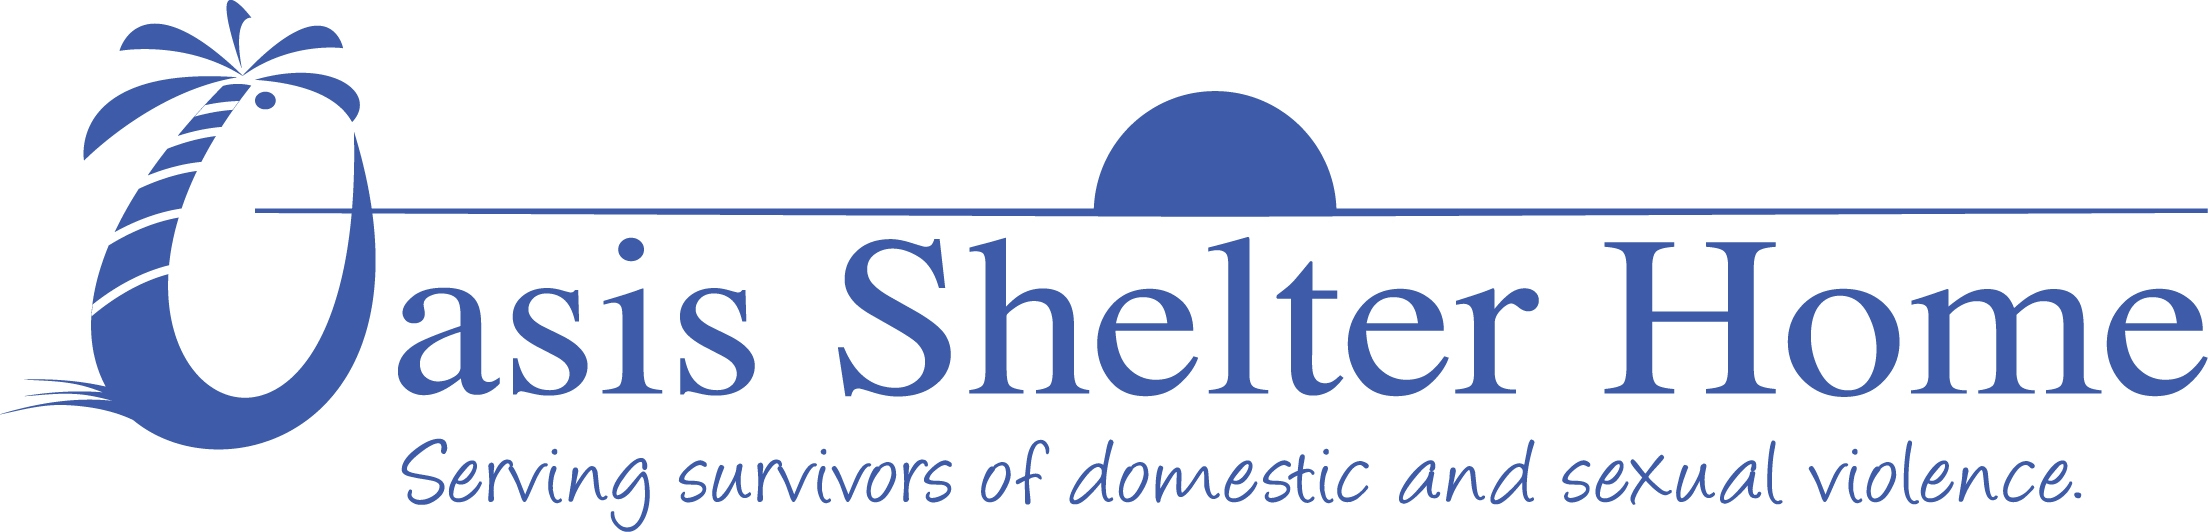 Oasis Shelter Home logo